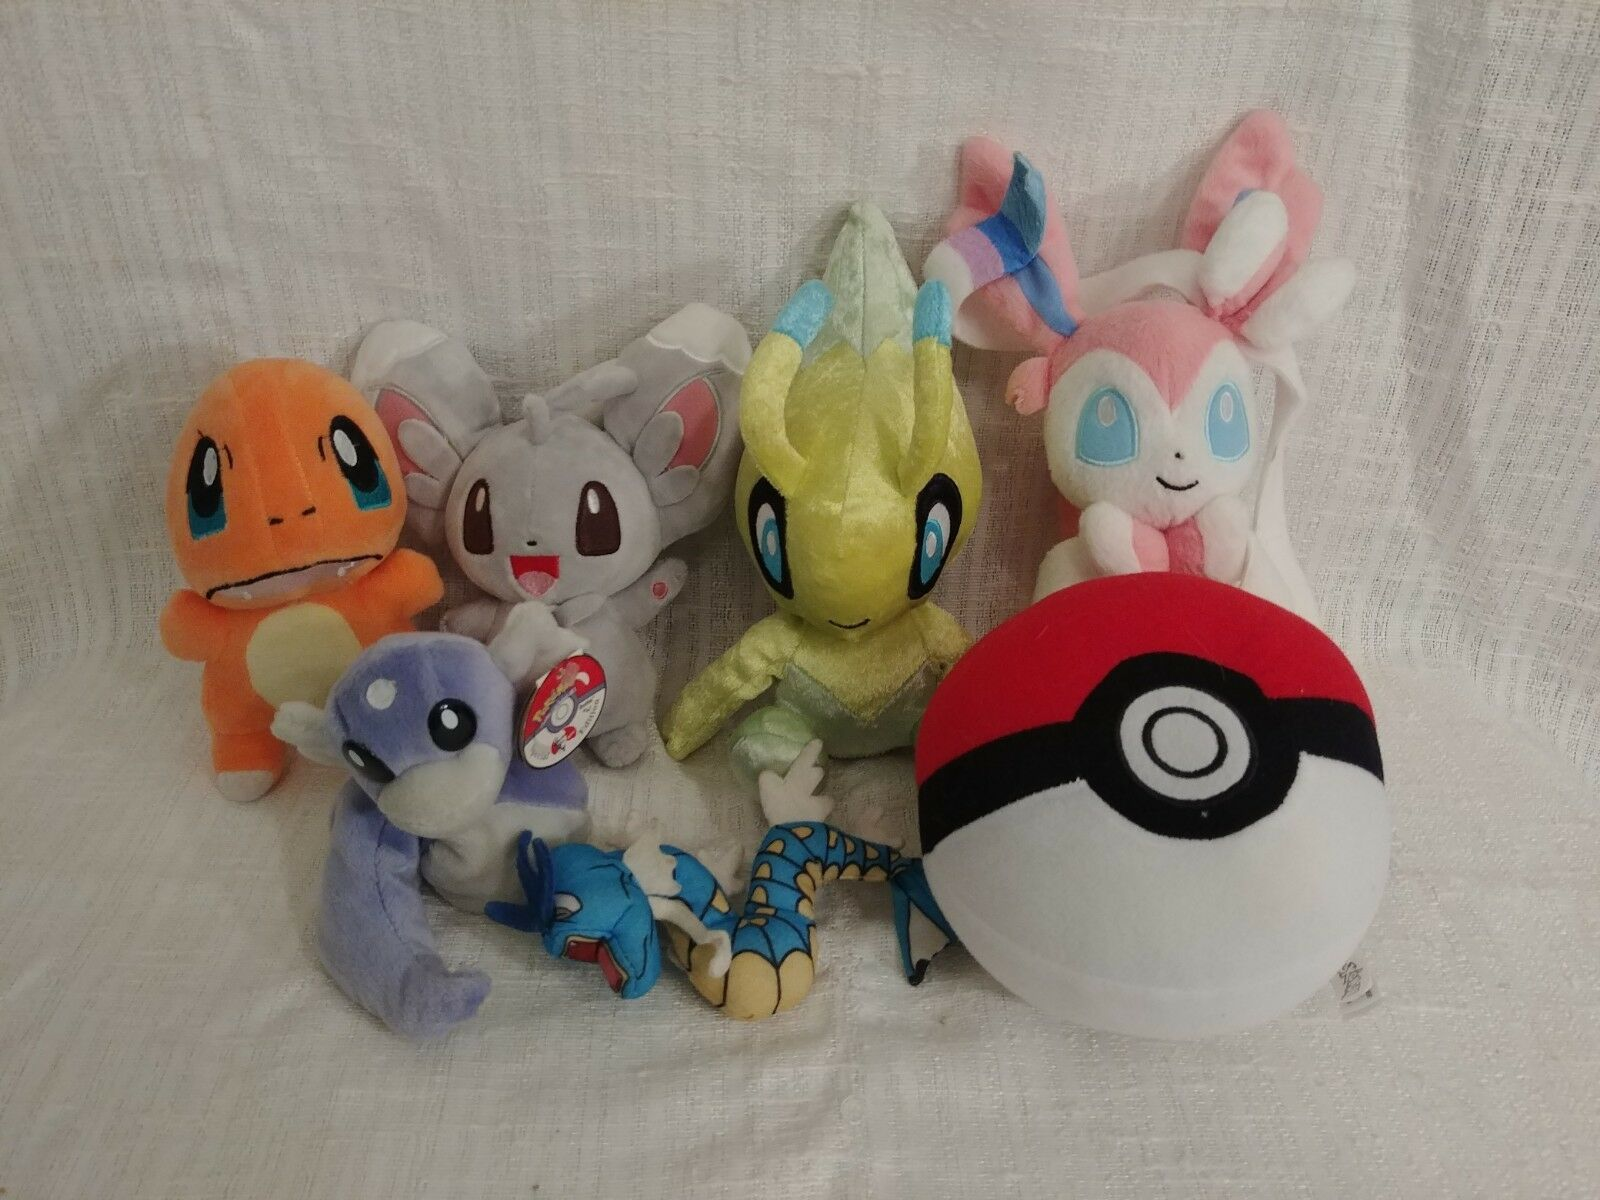 Lot of 7 Pokemon Plush Toys